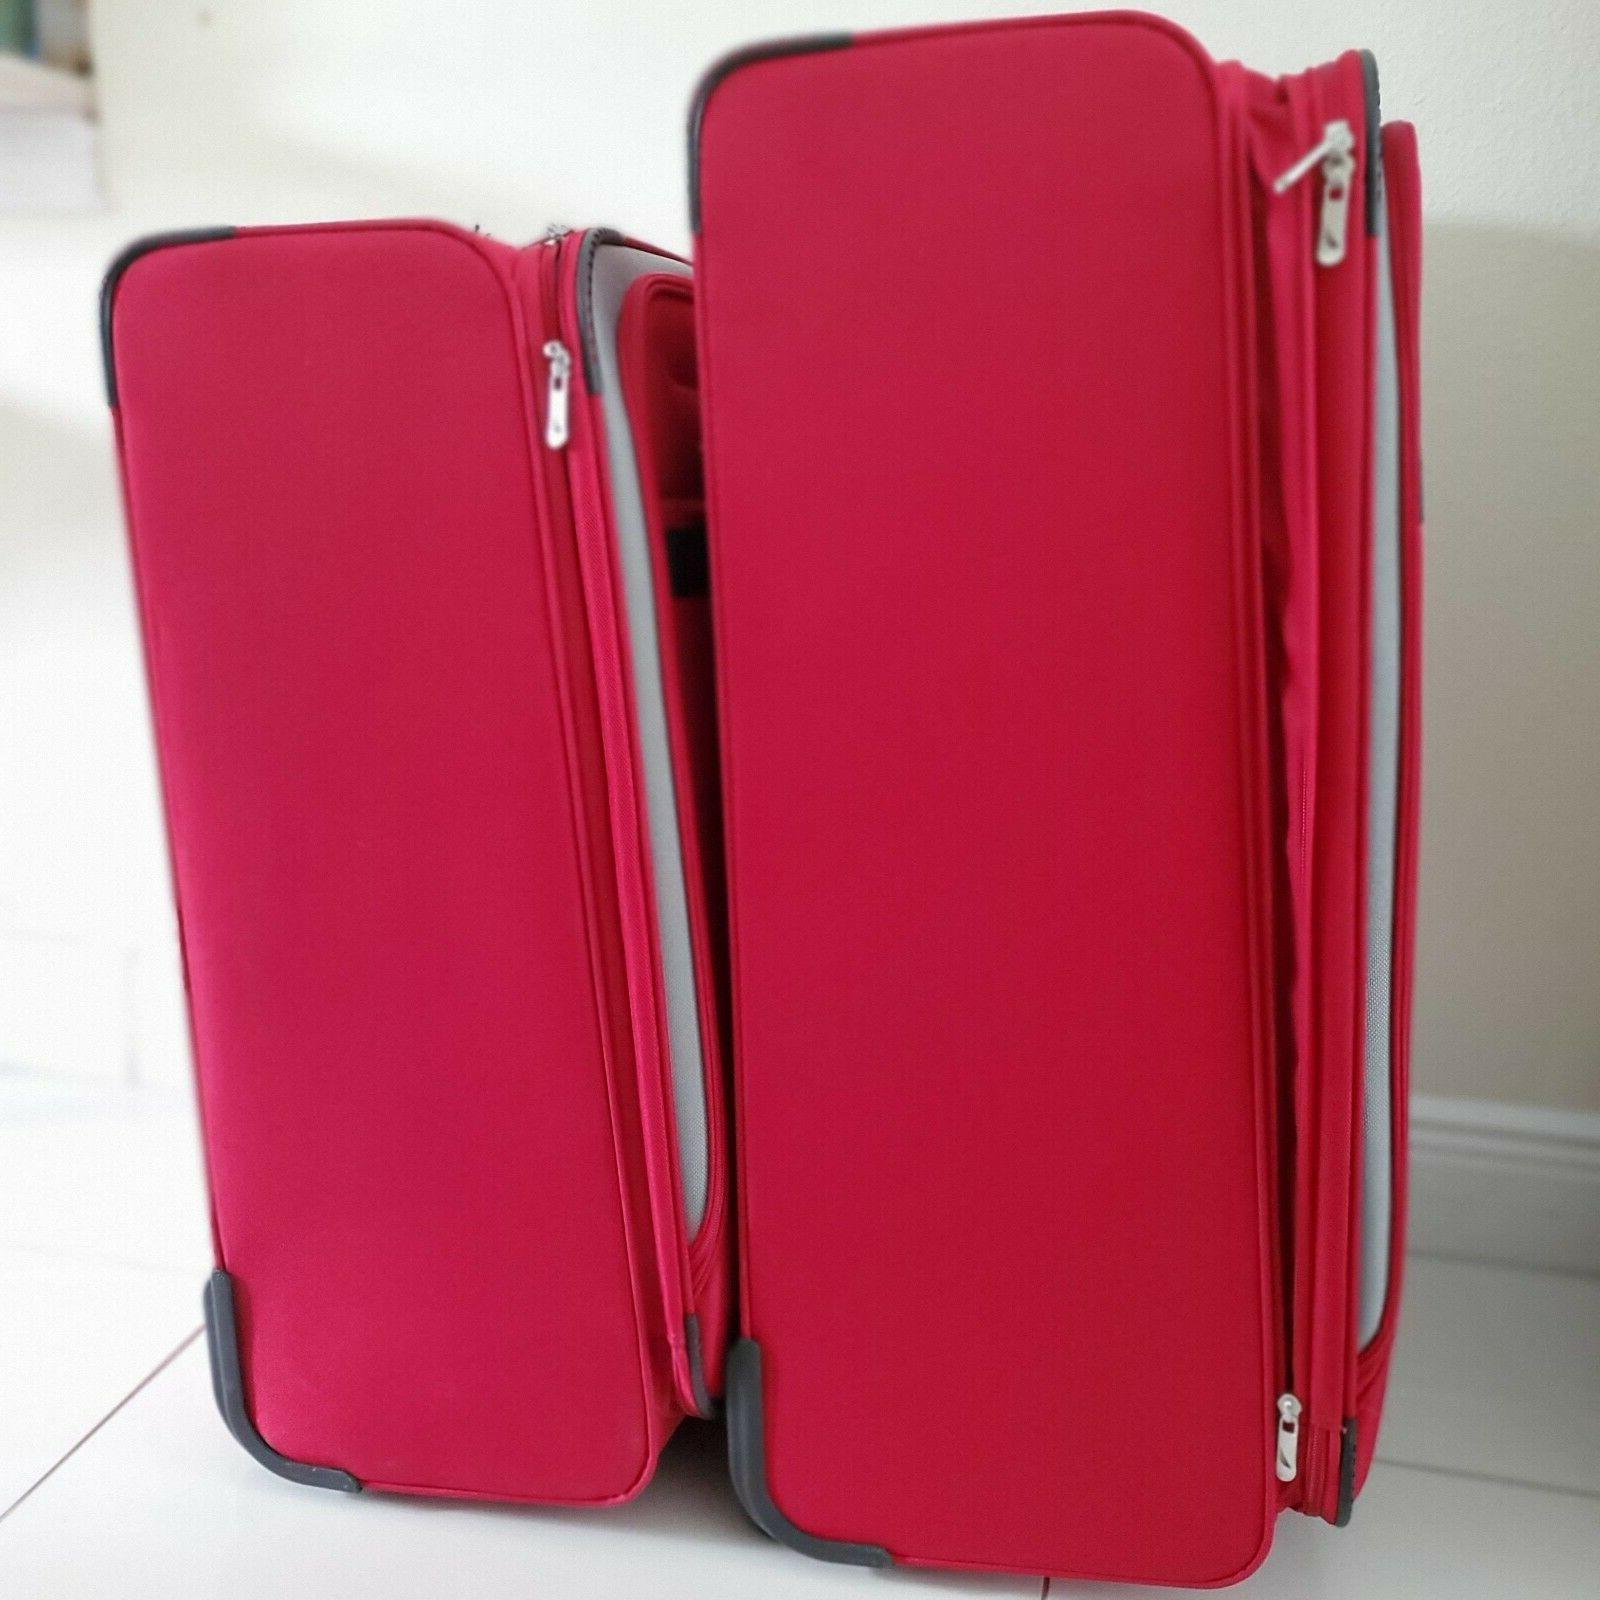 Nautica Collection Luggage Suitcases